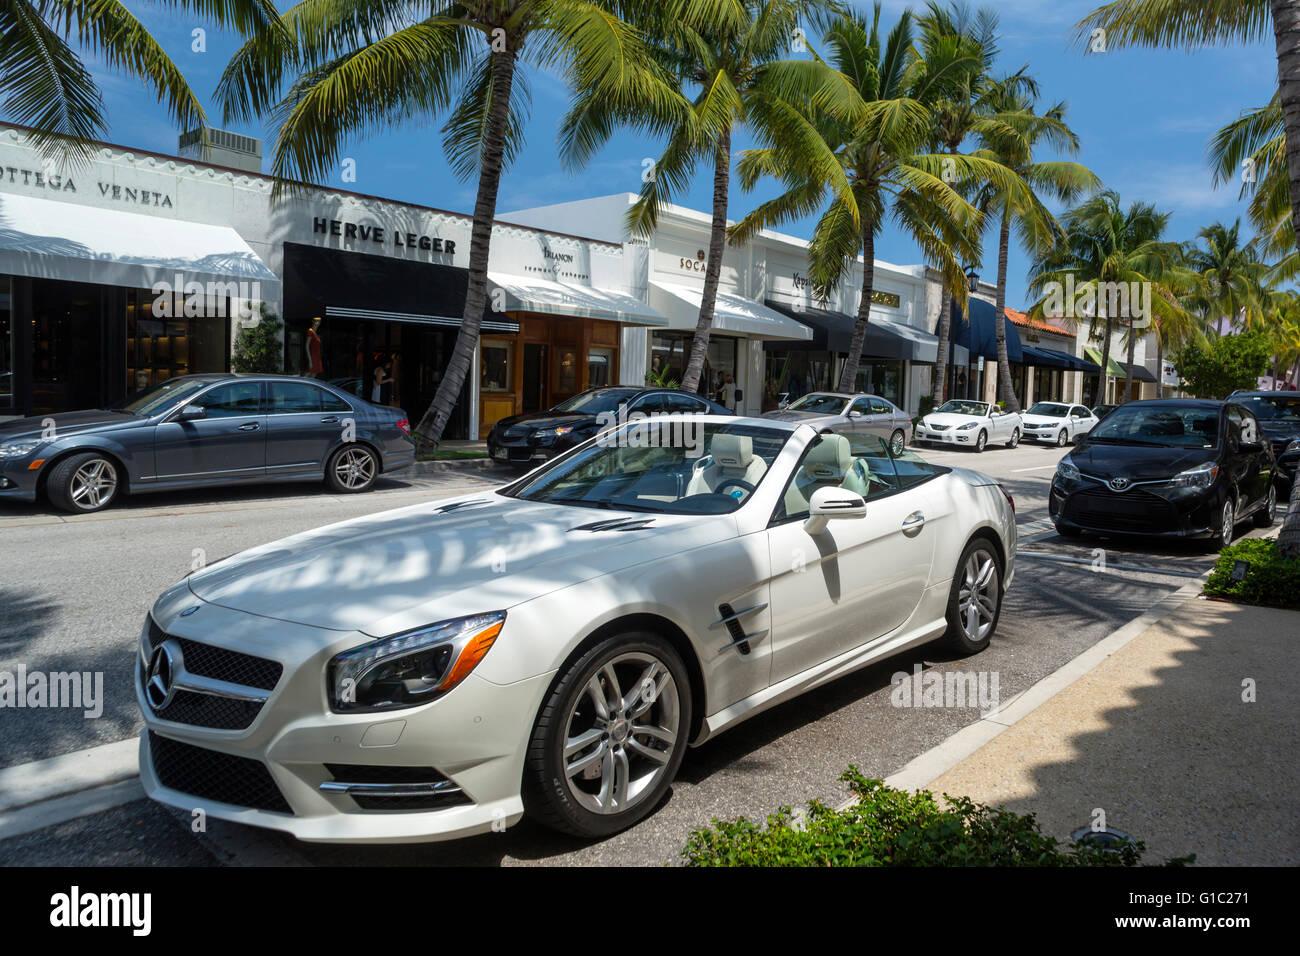 Mercedes benz roadster convertible worth avenue palm beach for Mercedes benz north palm beach fl